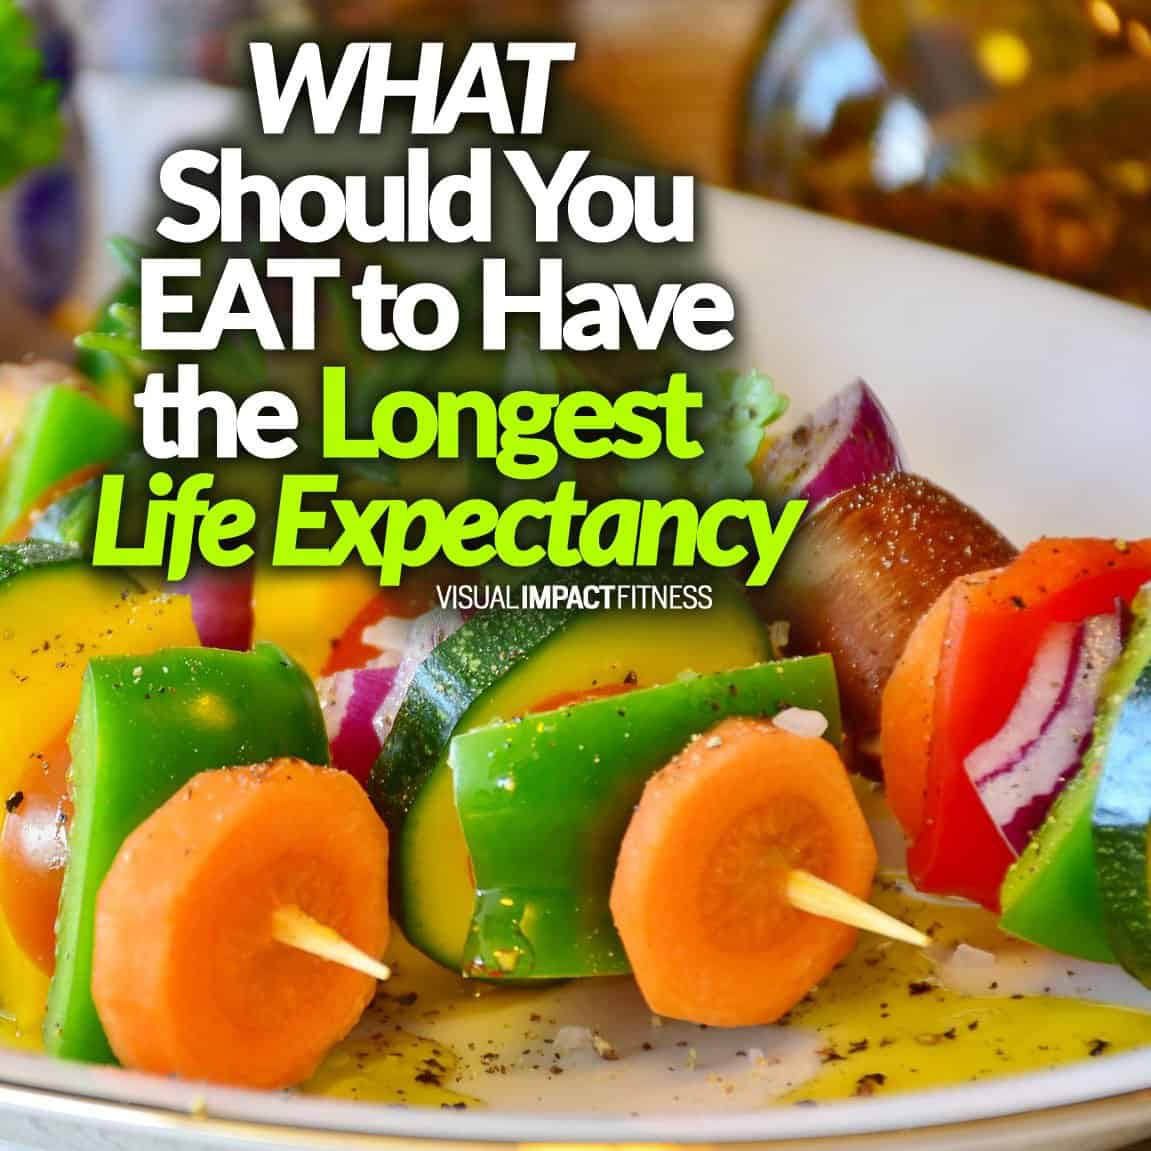 What Should You Eat to Have the Longest Life Expectancy